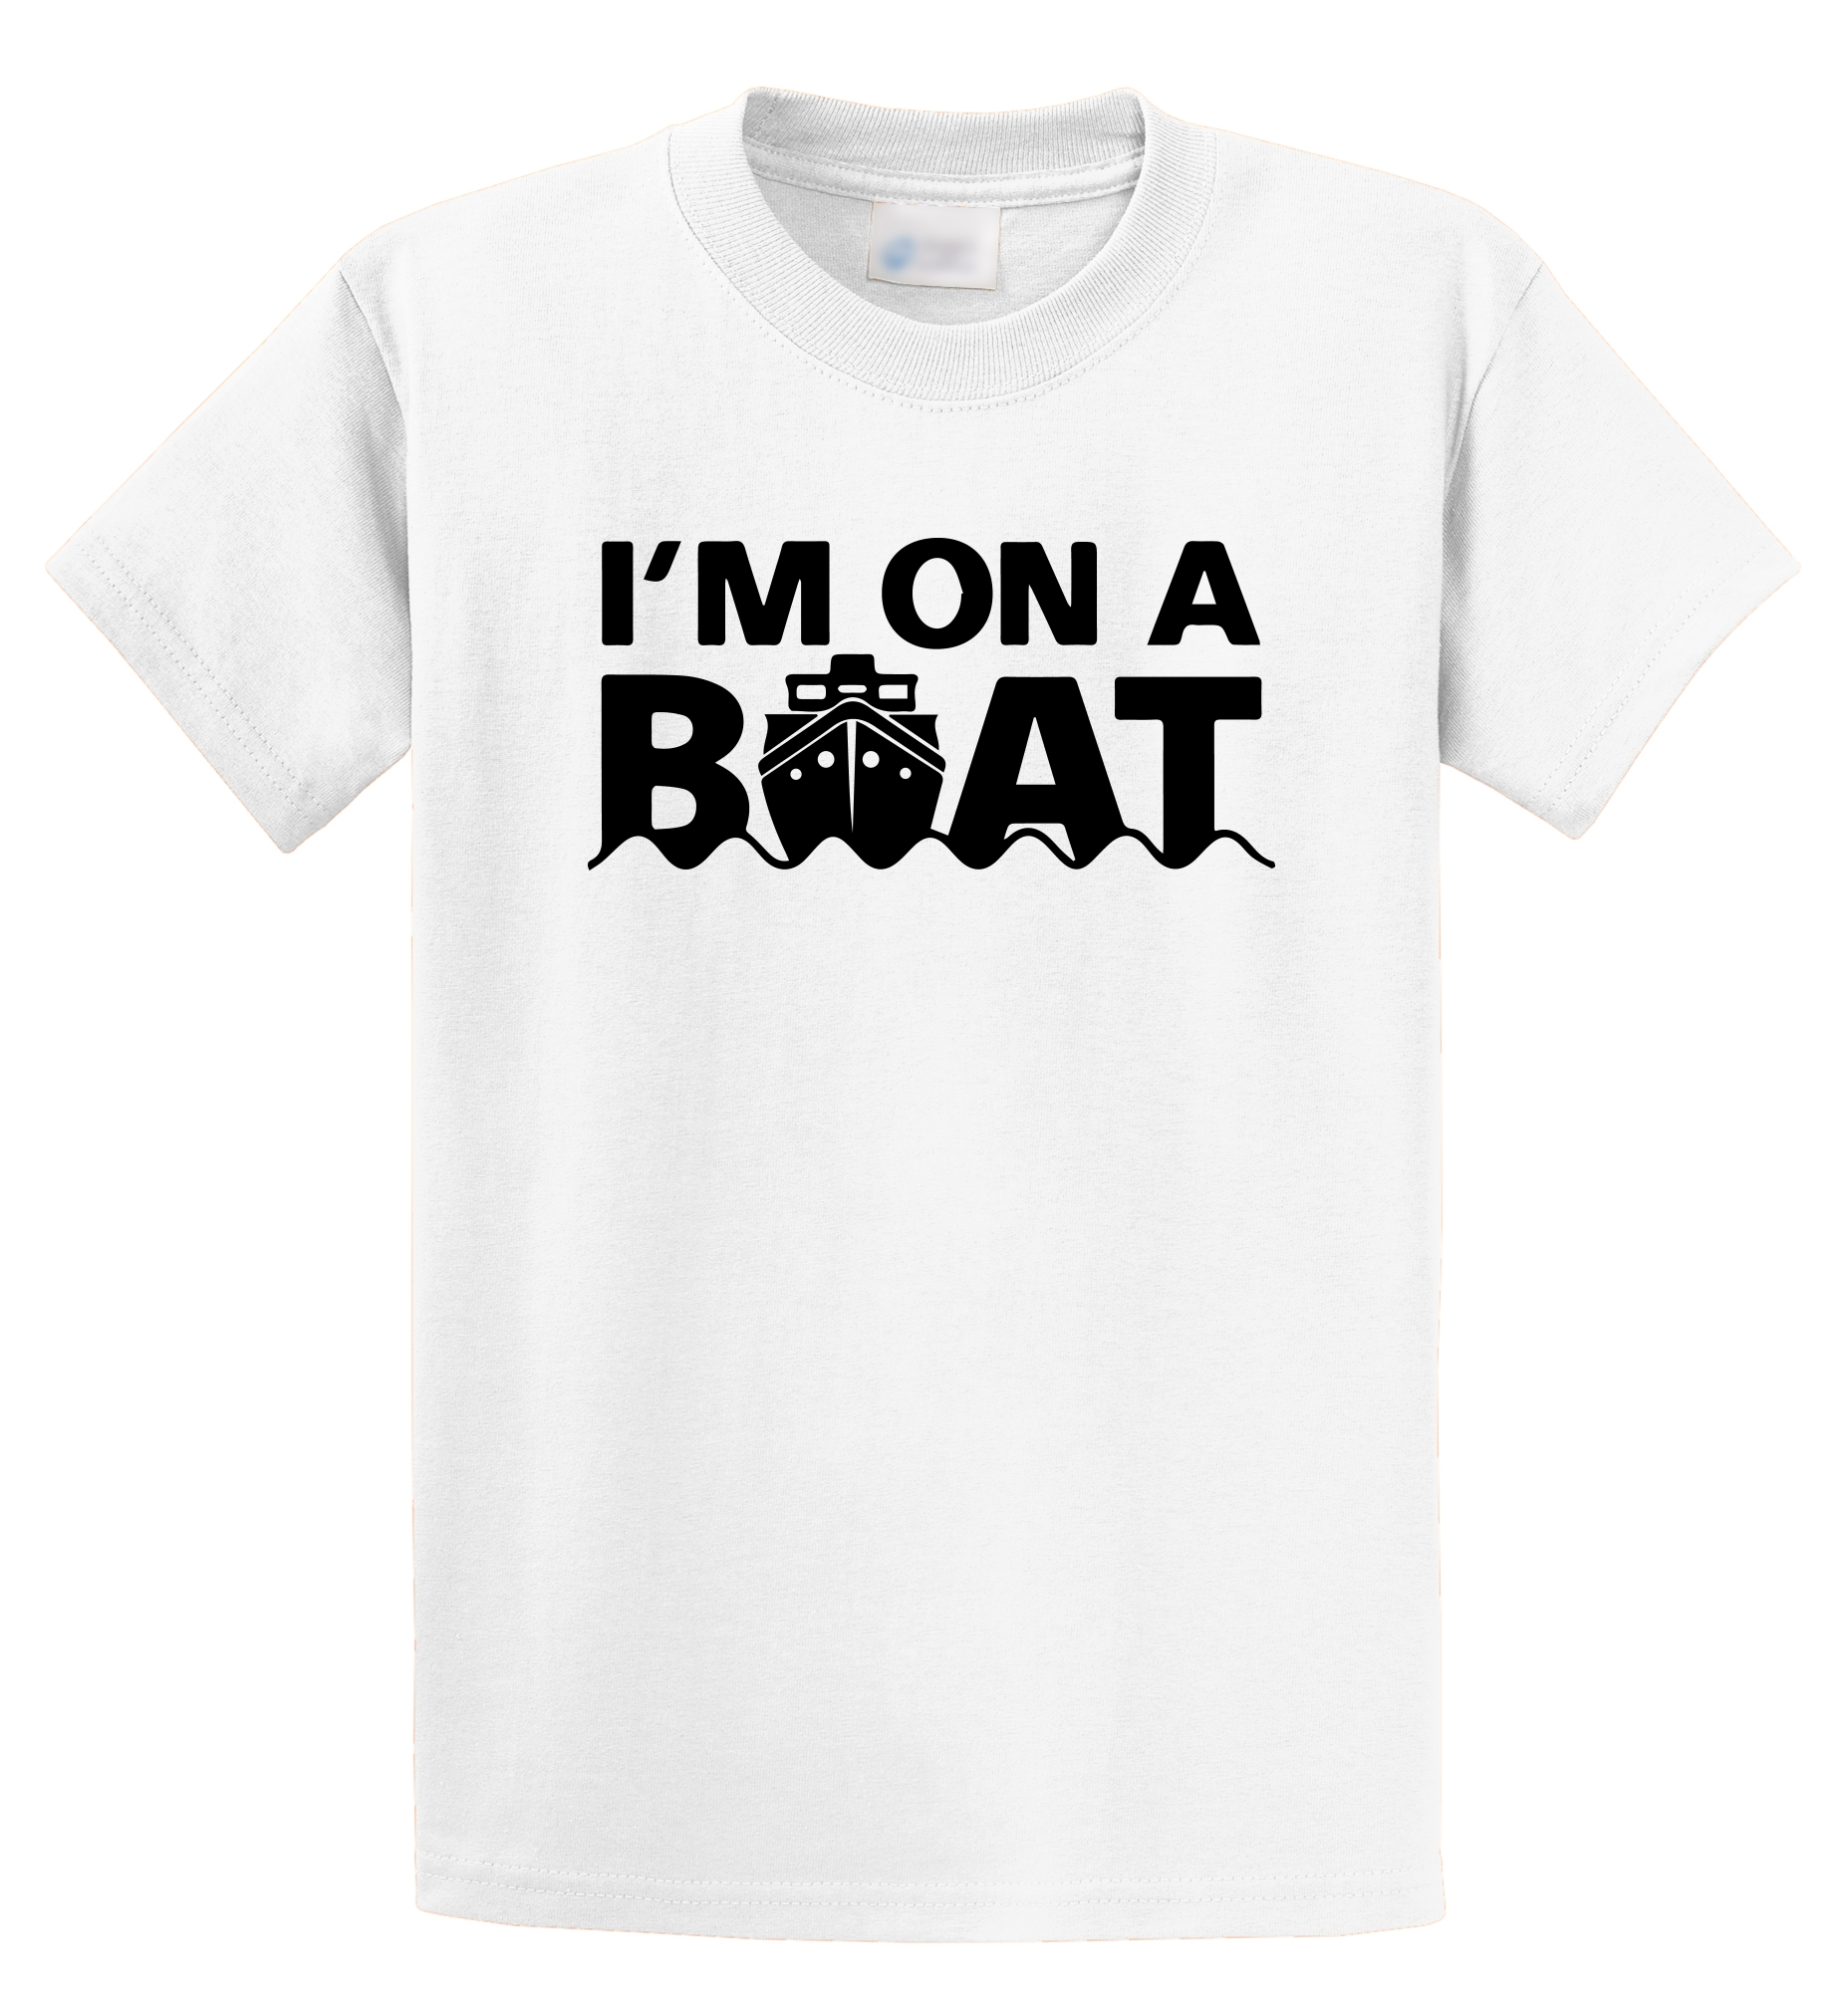 Wholesale T Shirts O-Neck Funny Short Sleeve Mens I'M On A Boat Funny Spoof  Boating Sailor Cruise Trip  Captain T Shirt